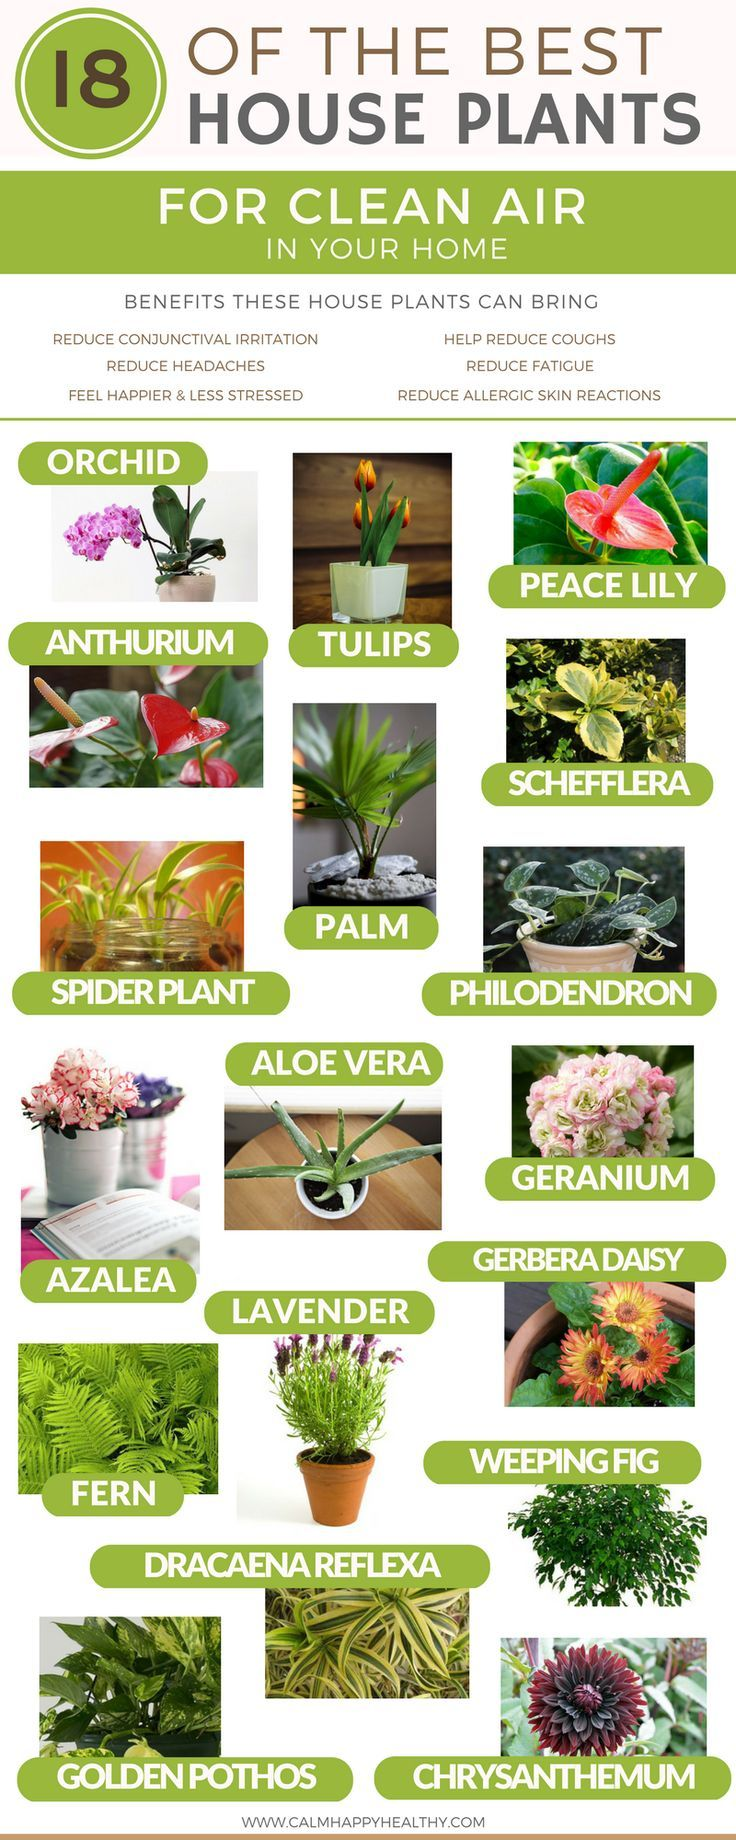 25 unique apartment gardening ideas on pinterest apartment plants cultivo indoor and growing - Home plants types ...